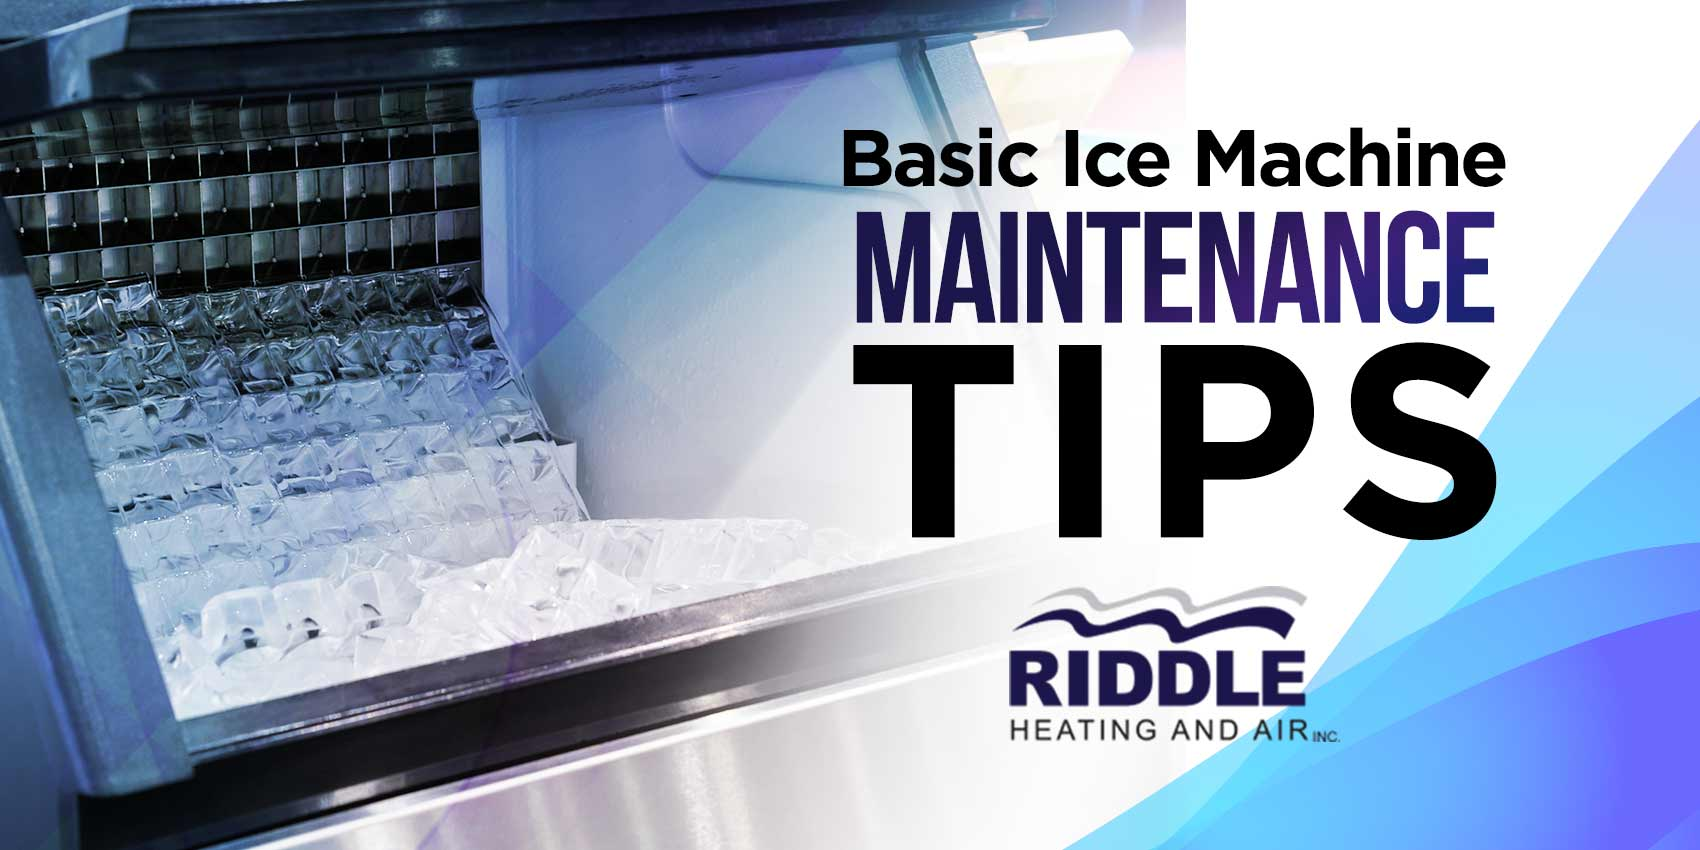 Basic Ice Machine Maintenance Tips